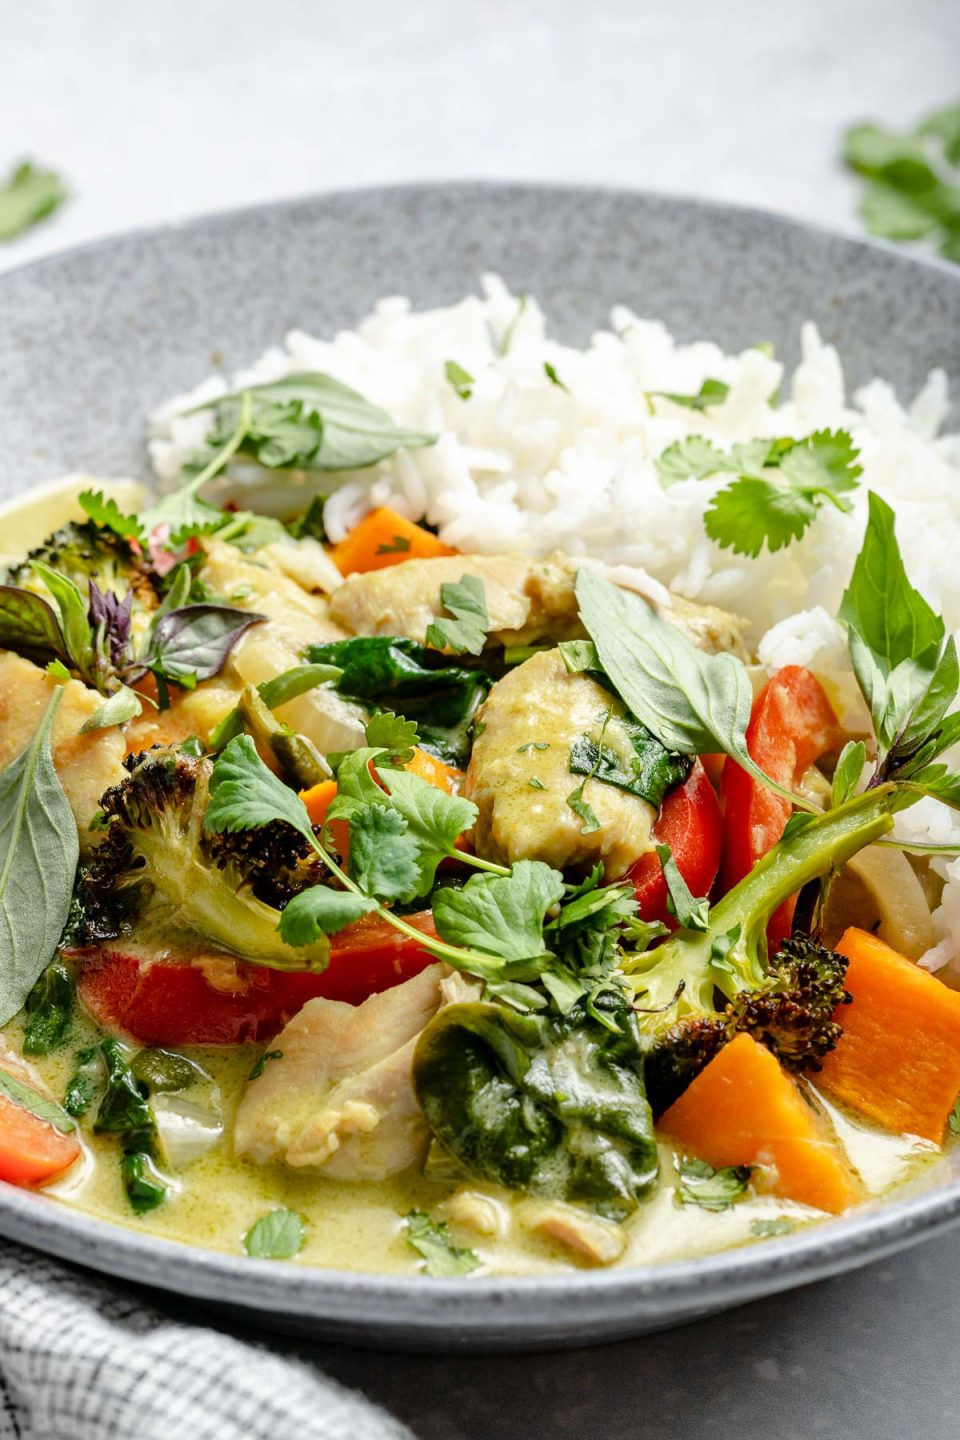 Side angle of Thai green curry in a serving bowl atop a light blue surface next to a checkered blue & white linen napkin. Cilantro leaves are in the background, behind the bowl.